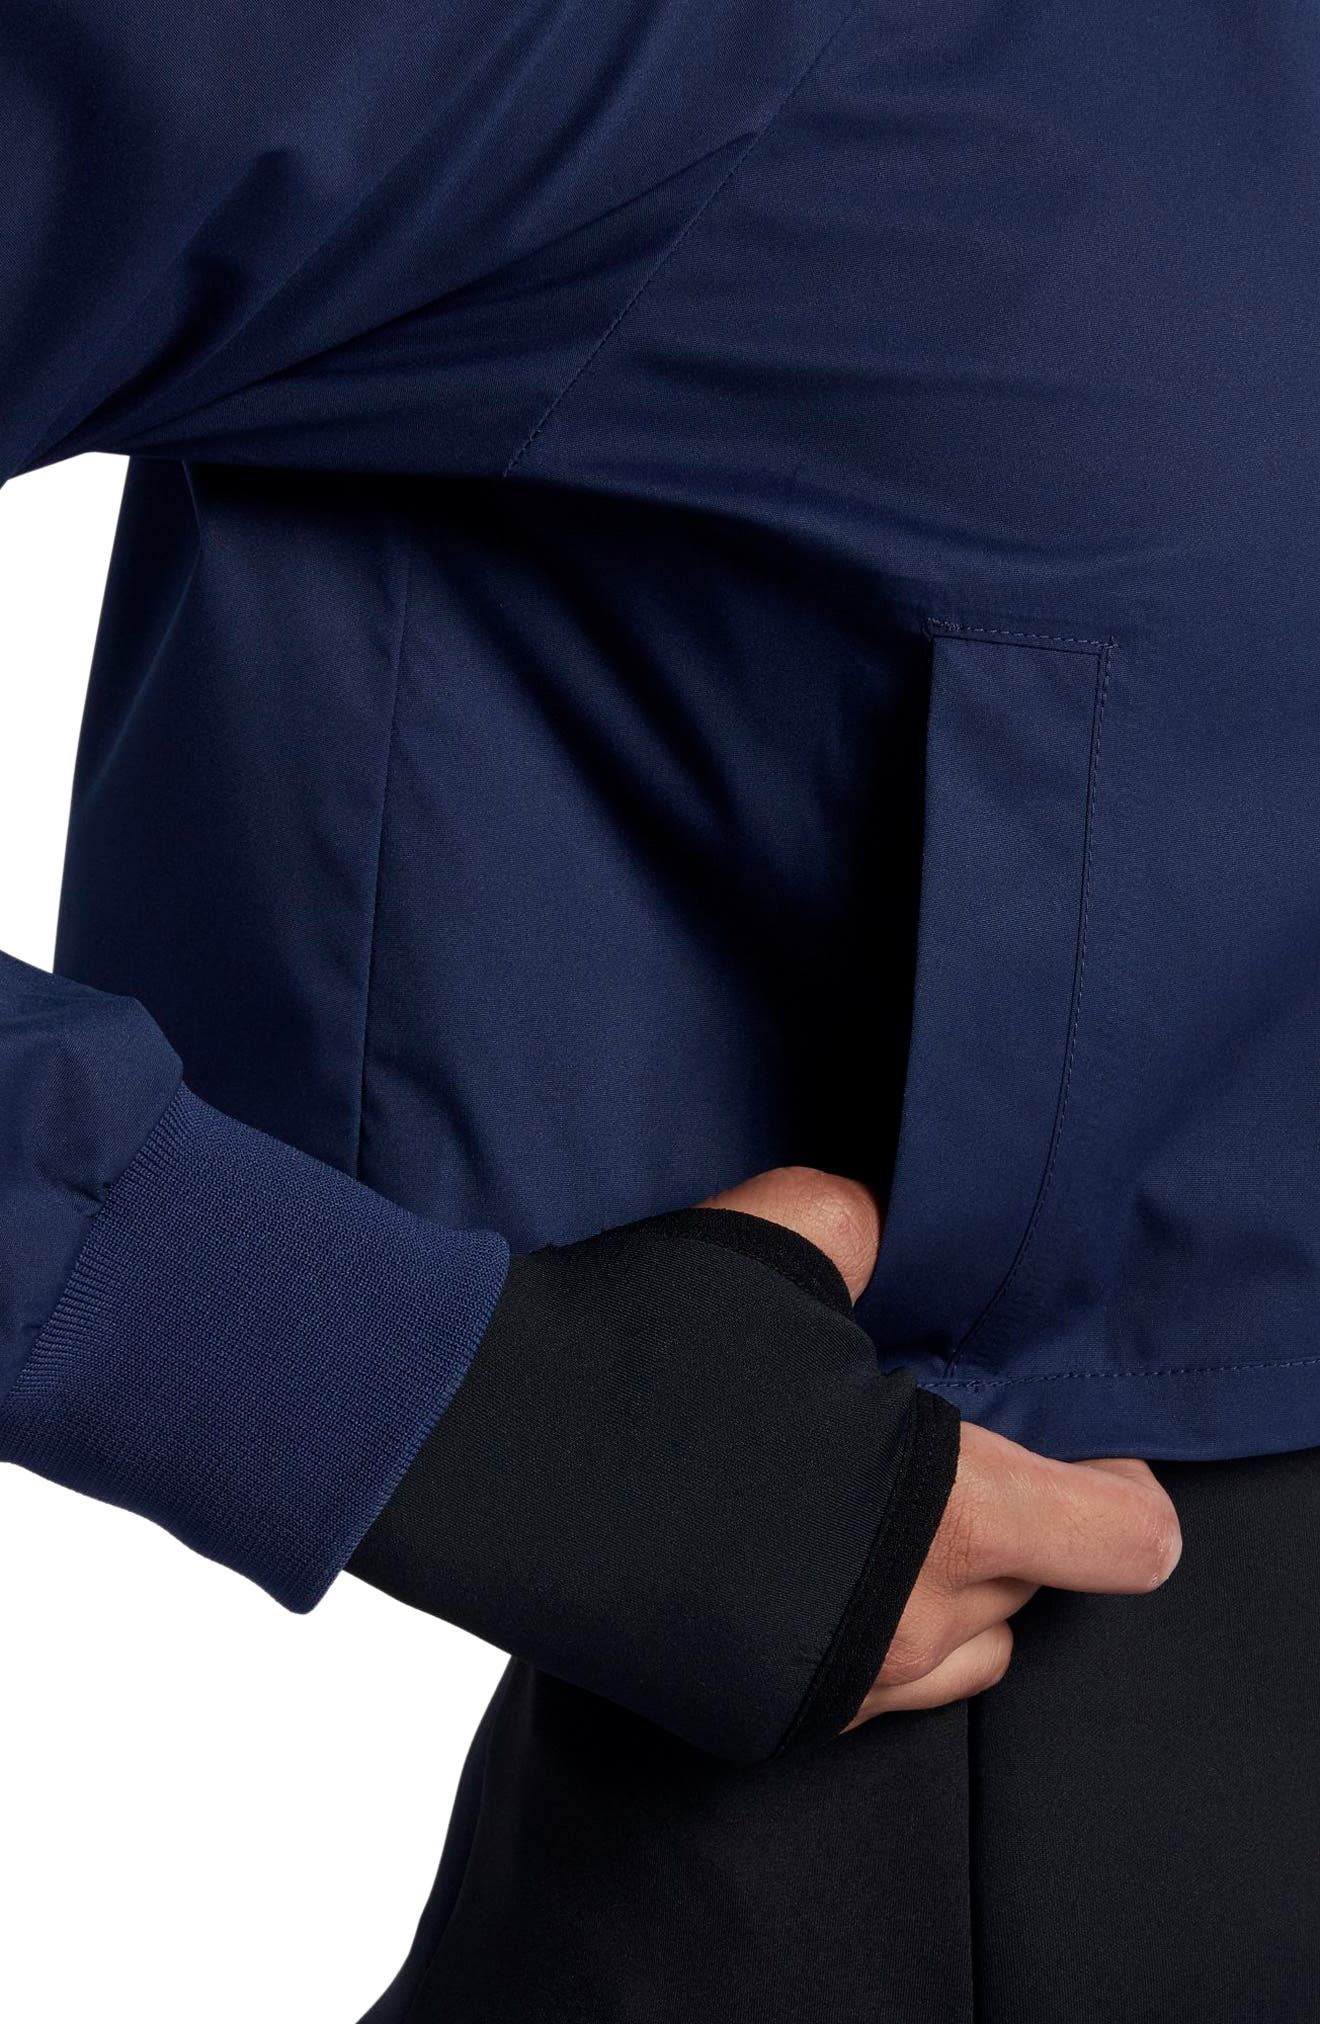 Therma Shield 2-in-1 Training Jacket,                             Alternate thumbnail 4, color,                             429